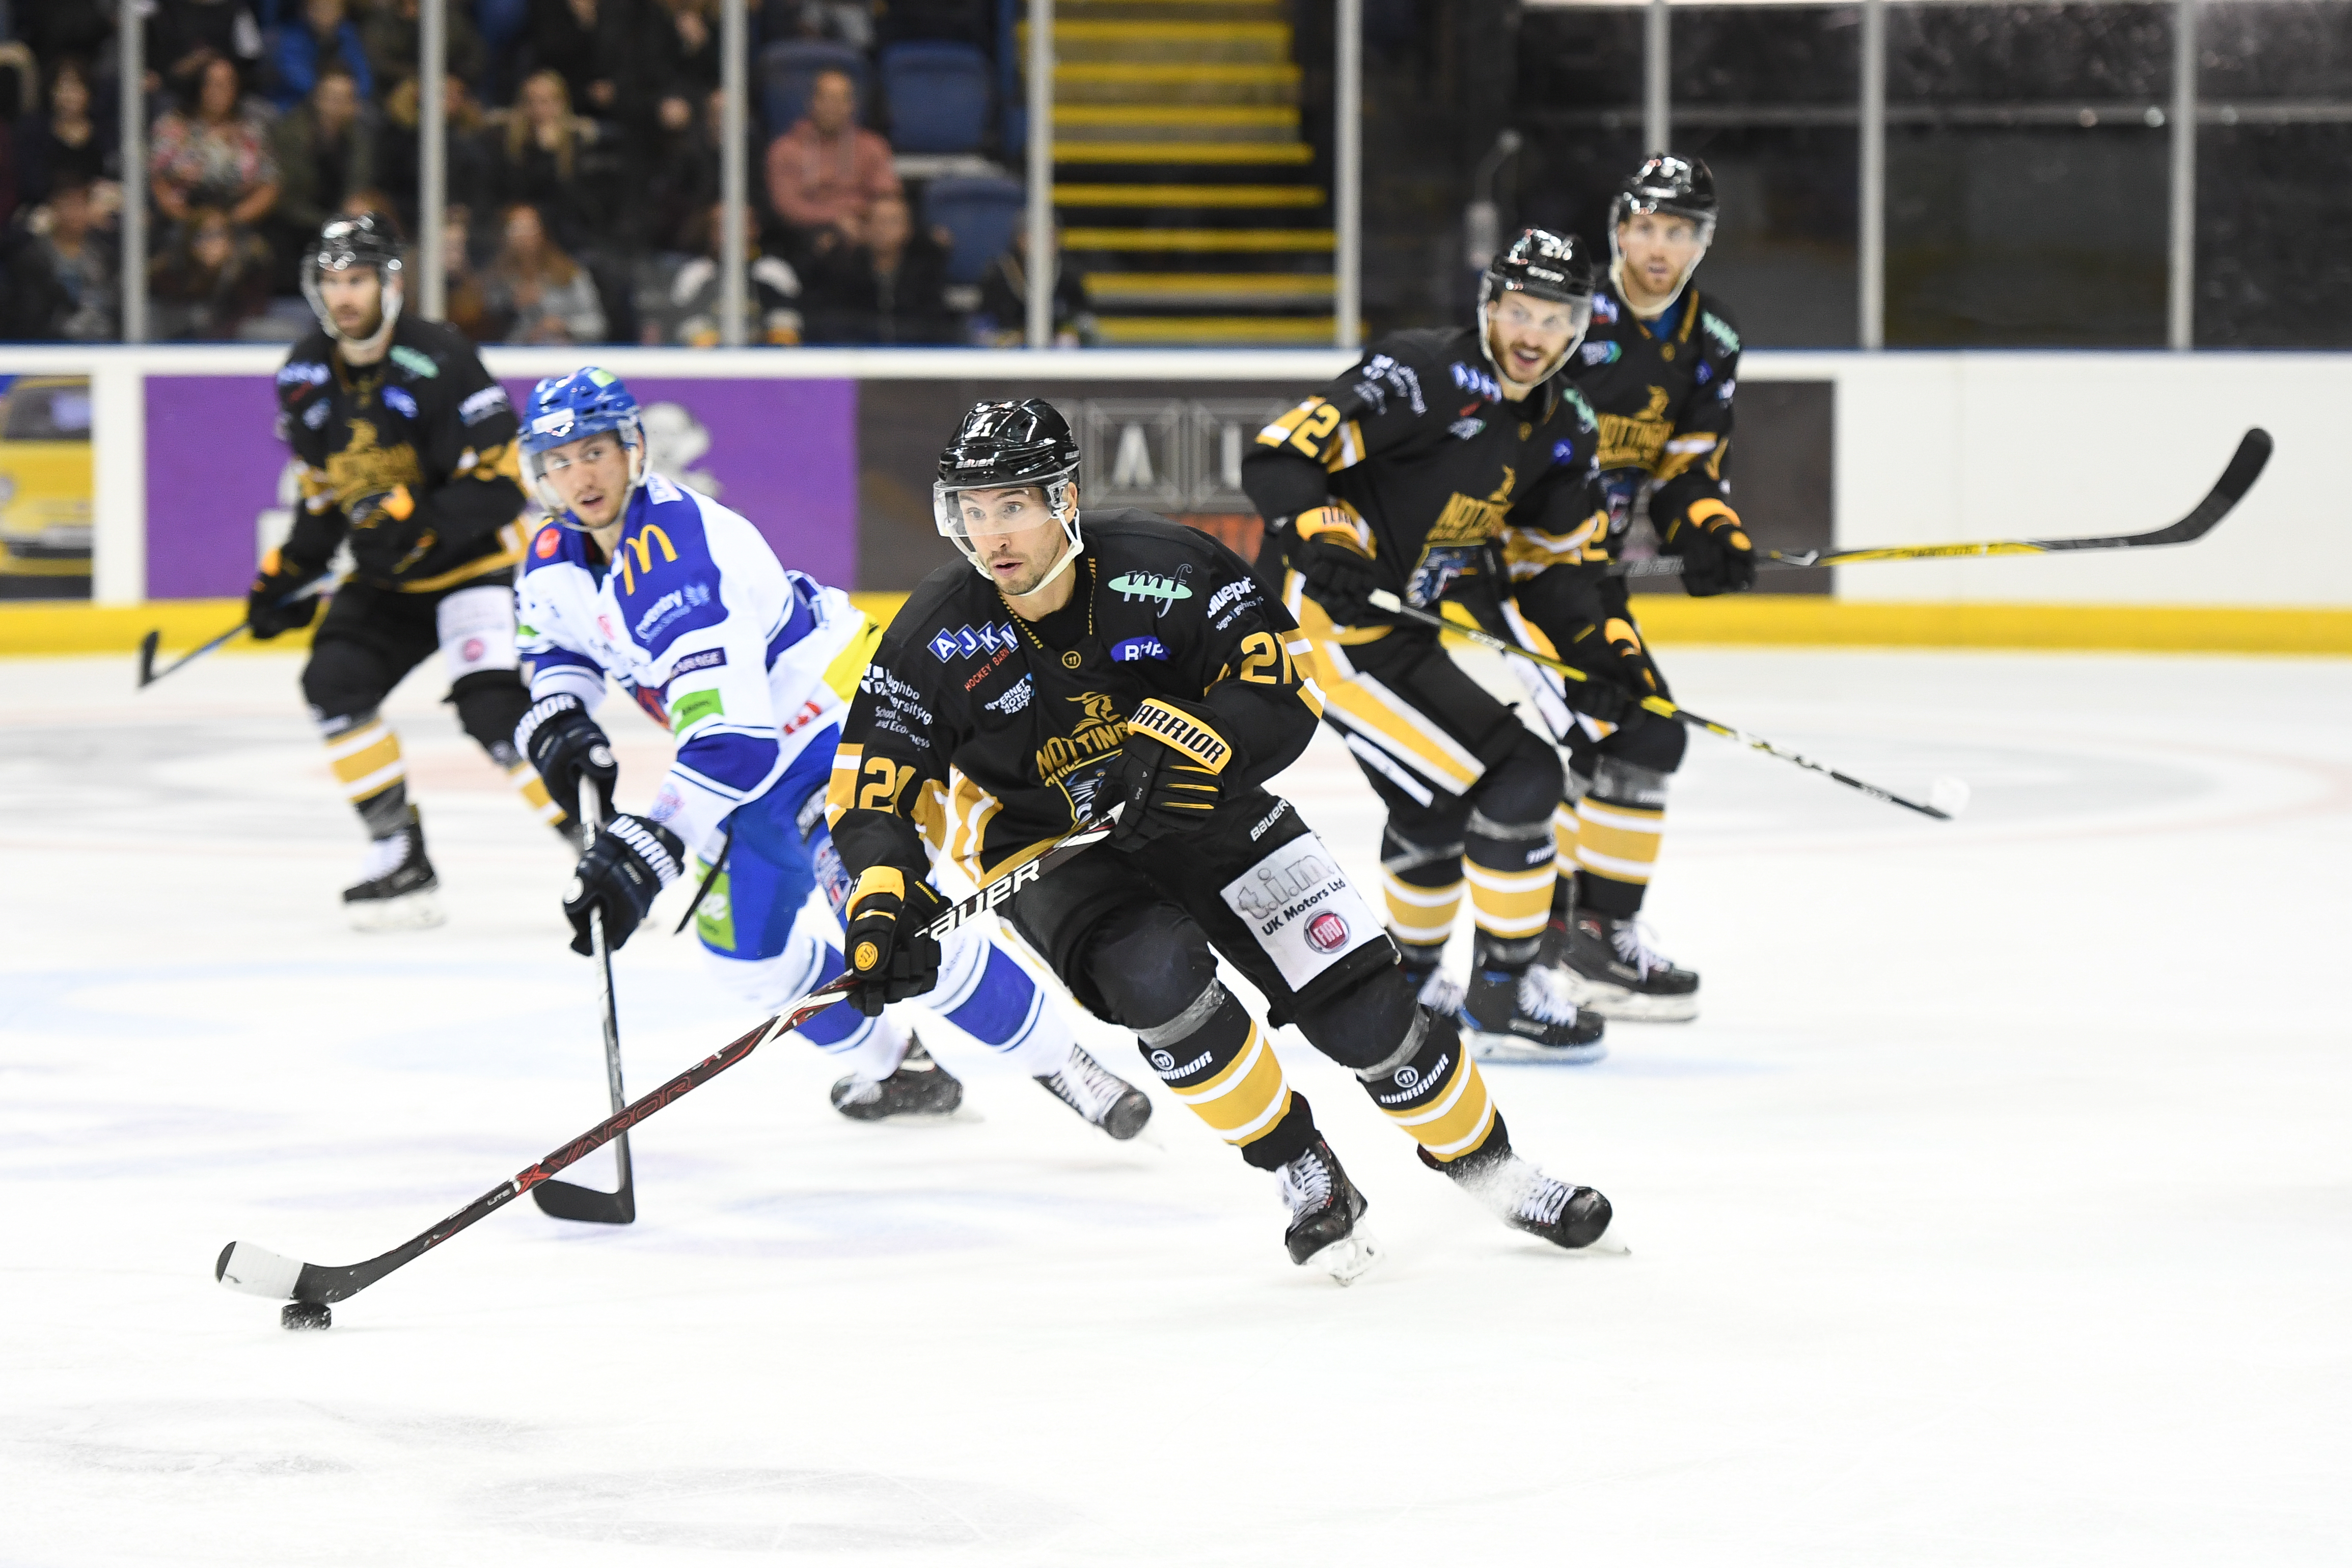 Panthers vs Blaze: New Year's Eve 2018 Top Image